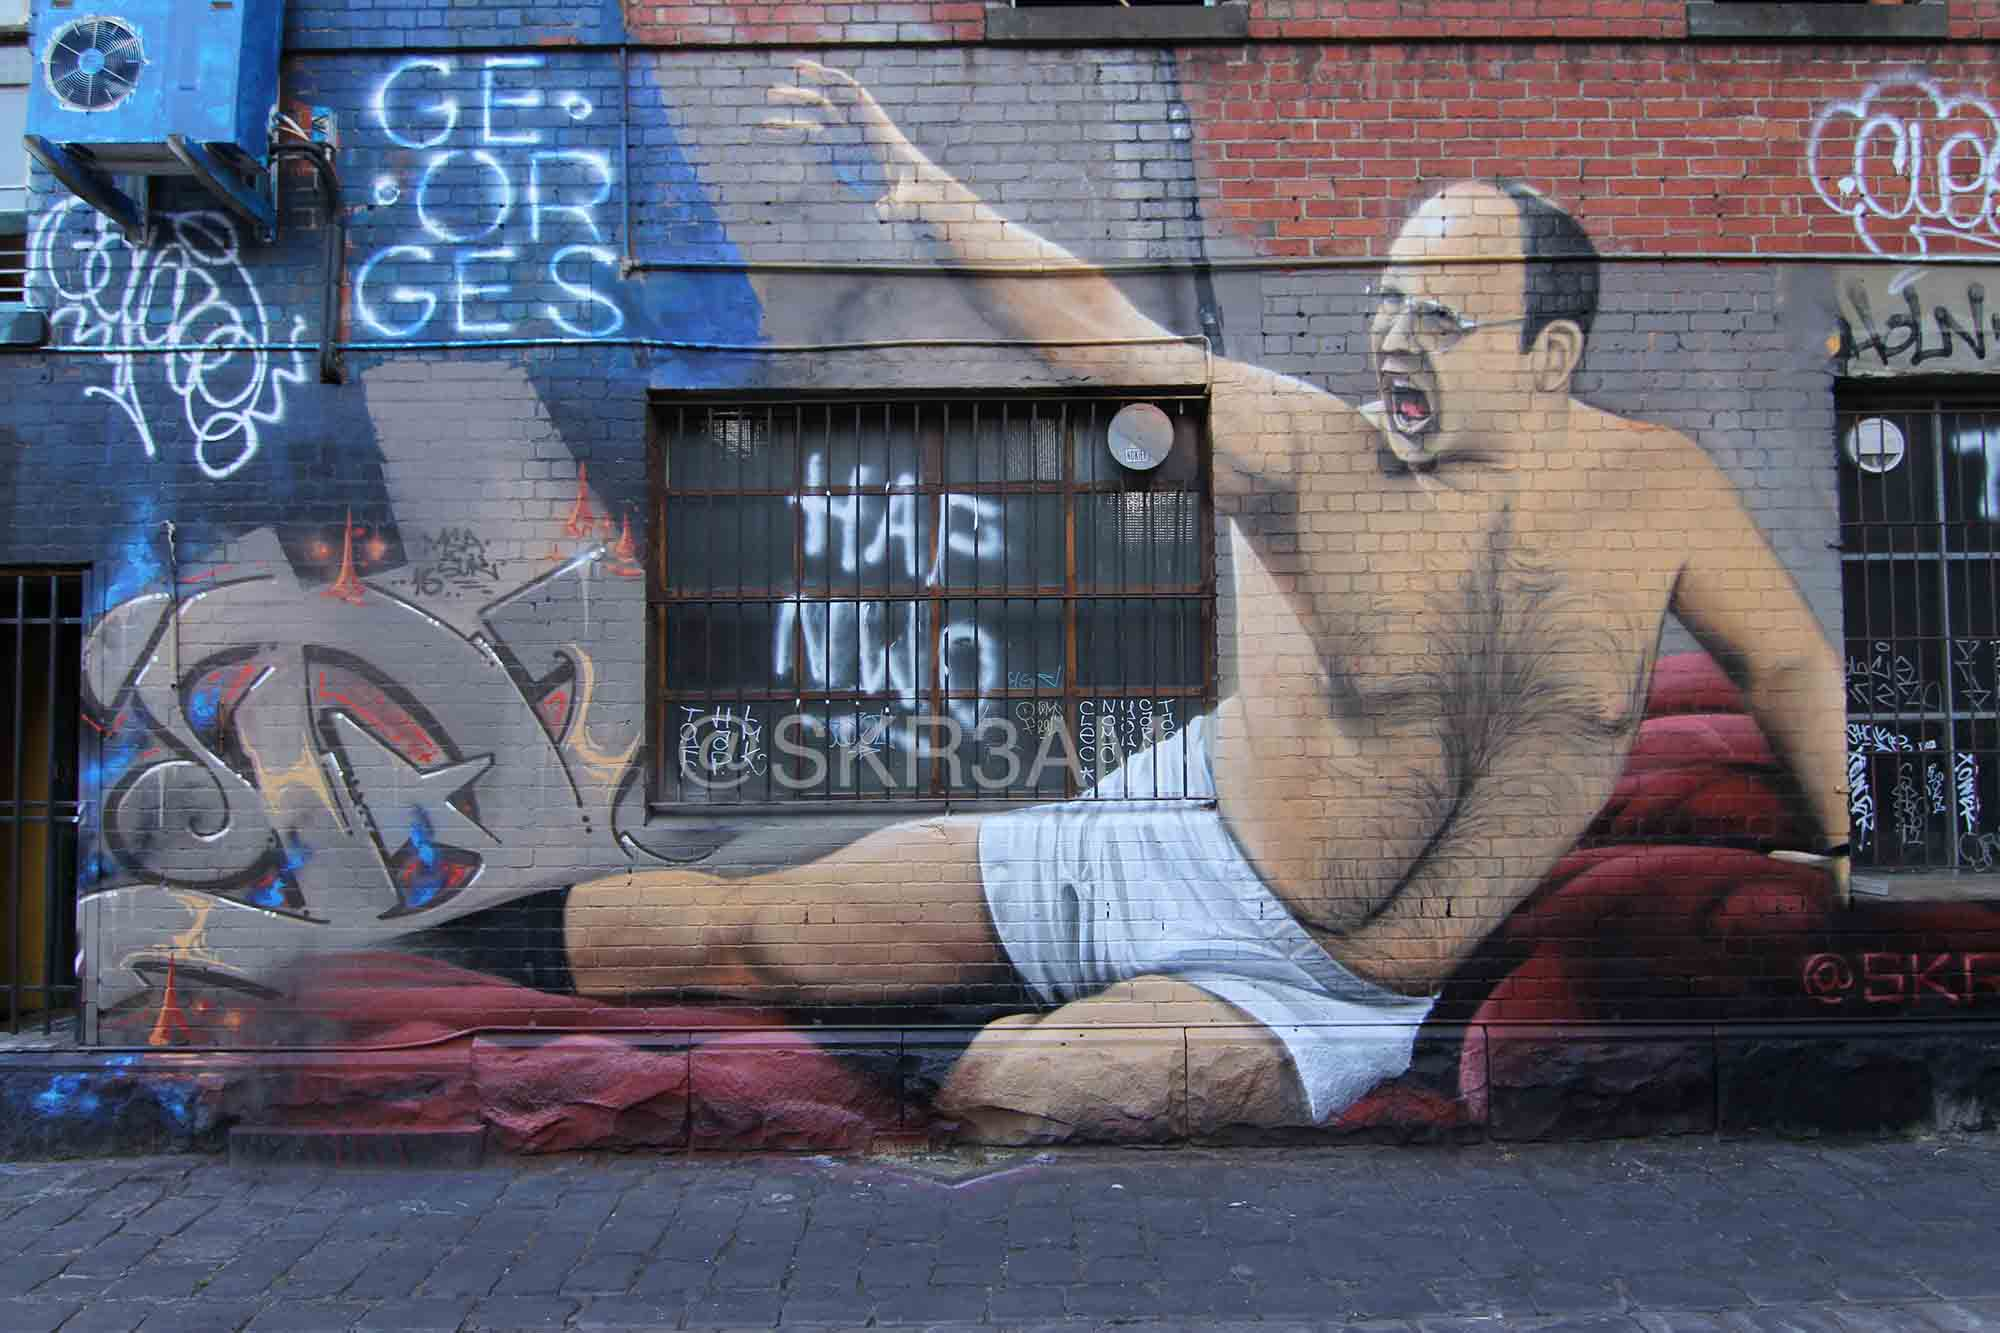 George Costanza Street Art